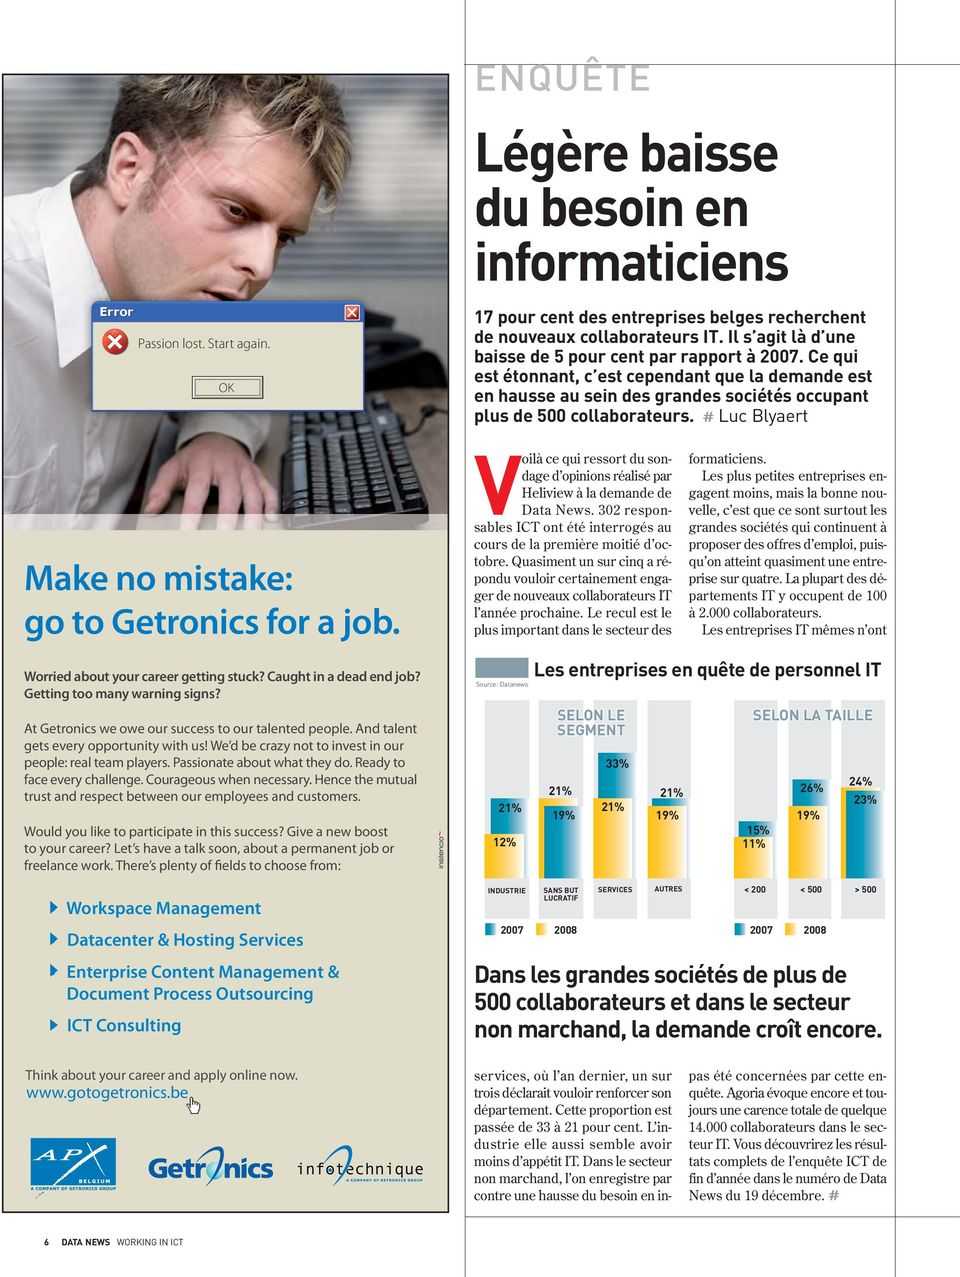 # Luc Blyaert Make no mistake: go to Getronics for a job. Worried about your career getting stuck? Caught in a dead end job? Getting too many warning signs?